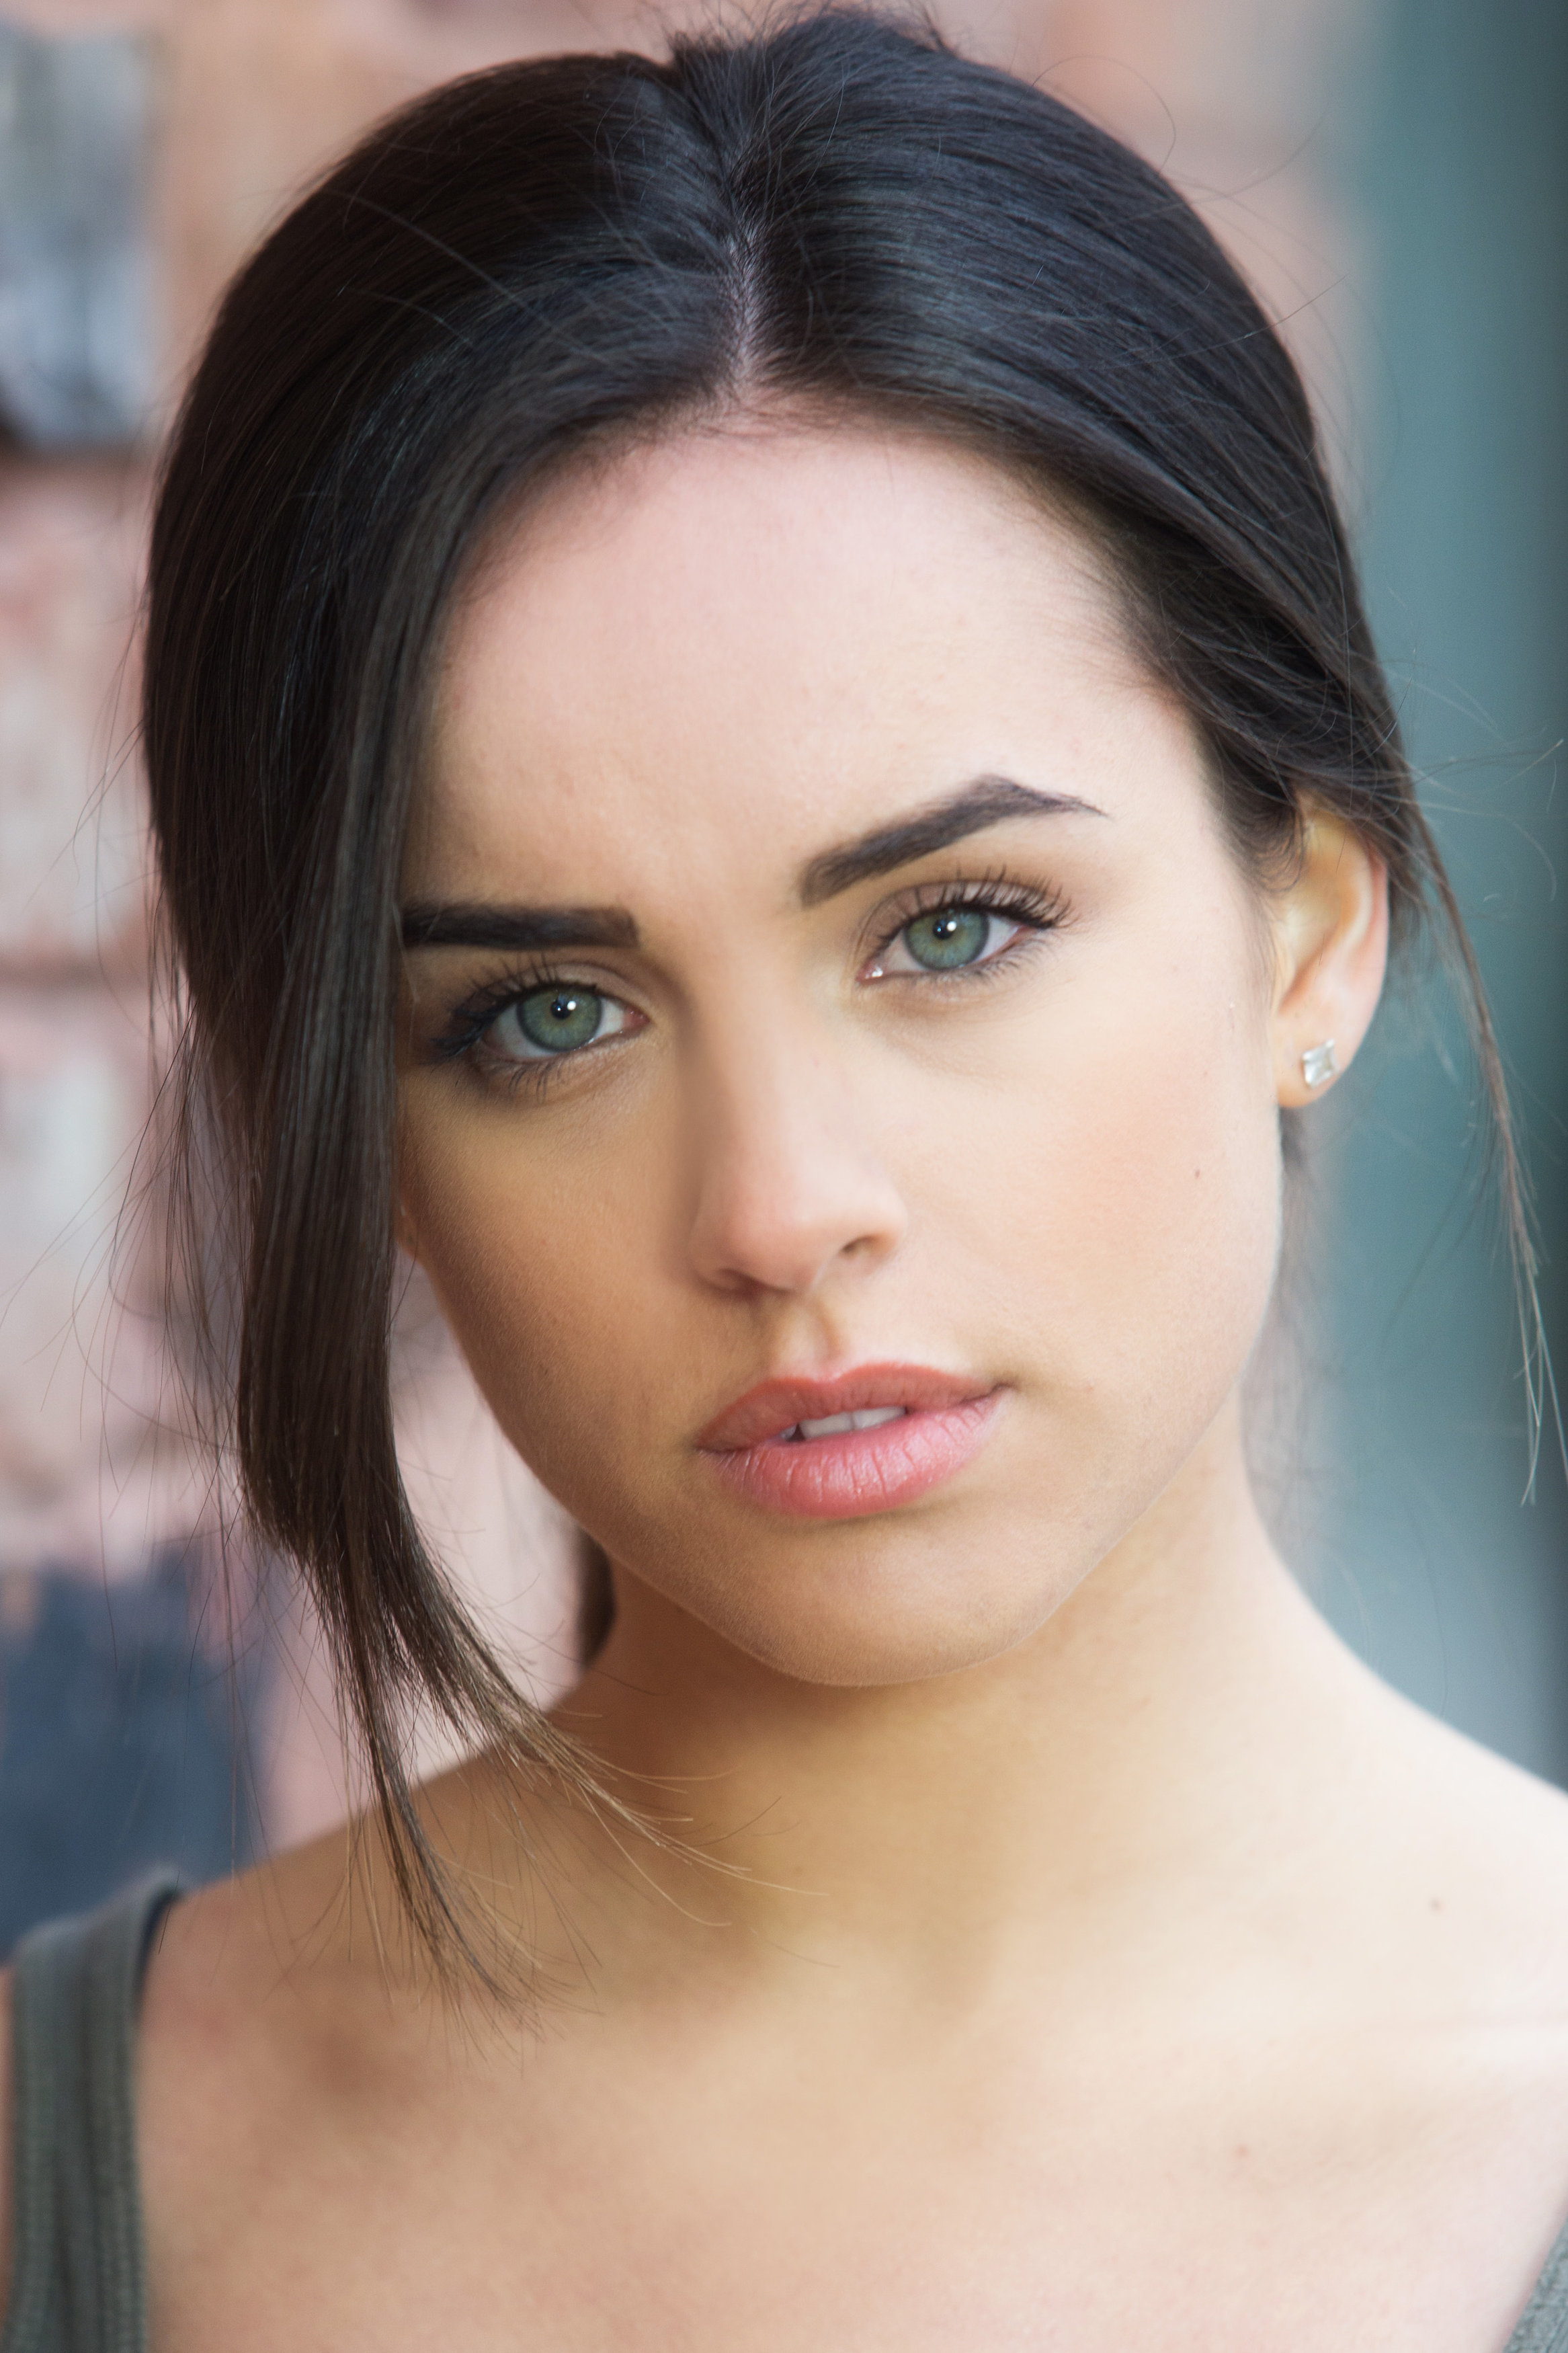 Actress georgia may foote is the fourth celebrity contestant to be